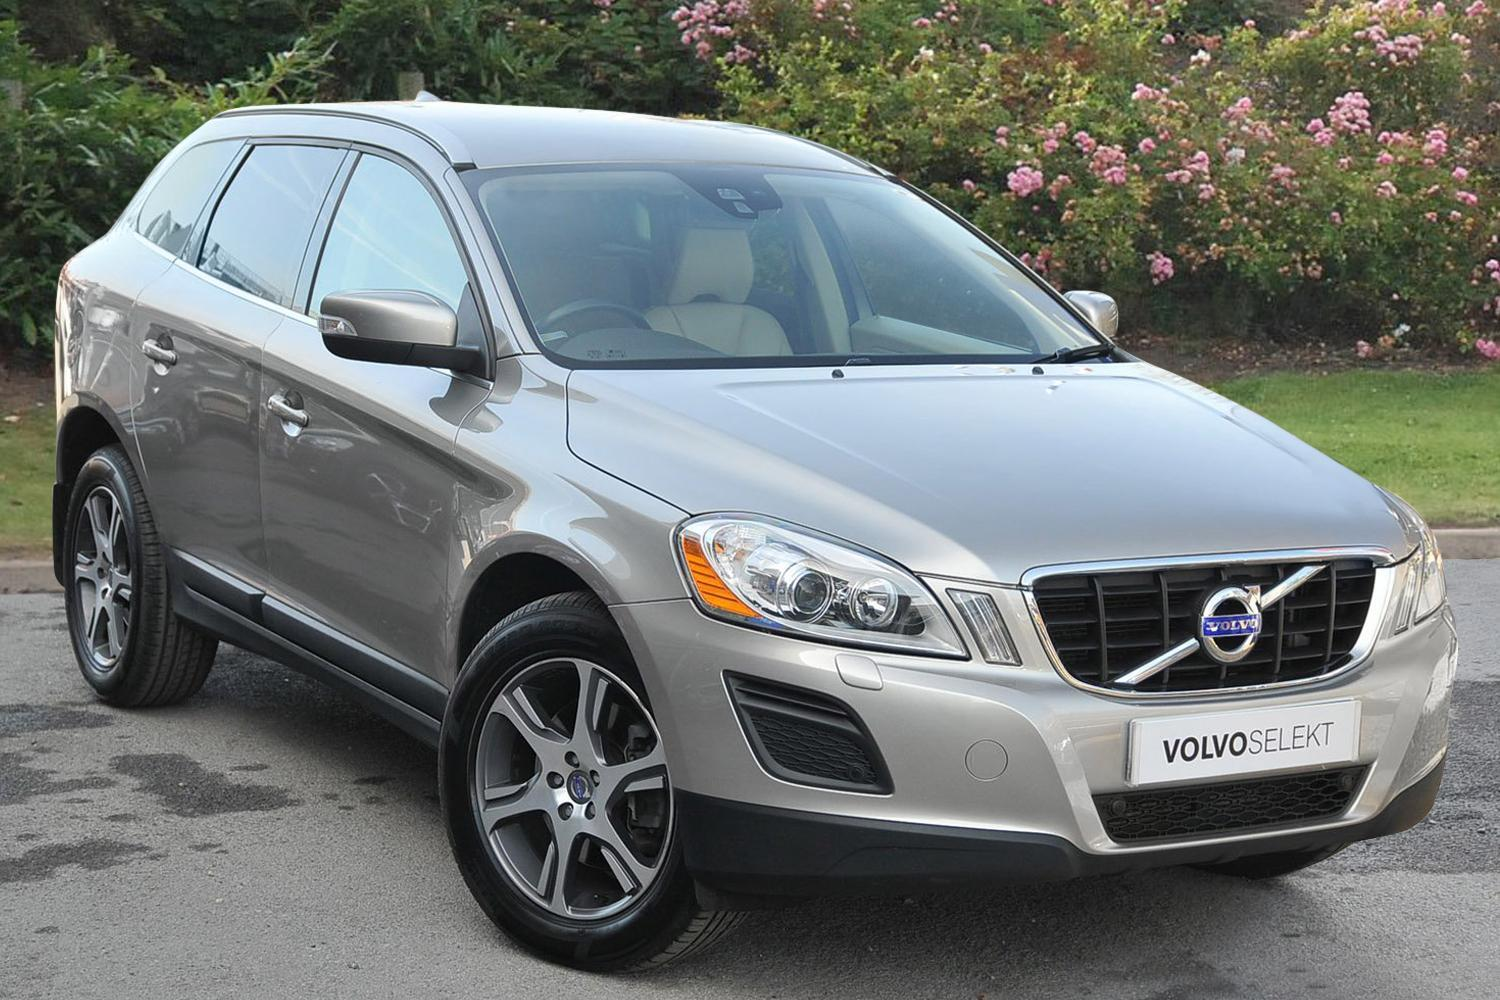 Used Volvo Xc60 D5 215 Se Lux 5dr Awd Geartronic Diesel